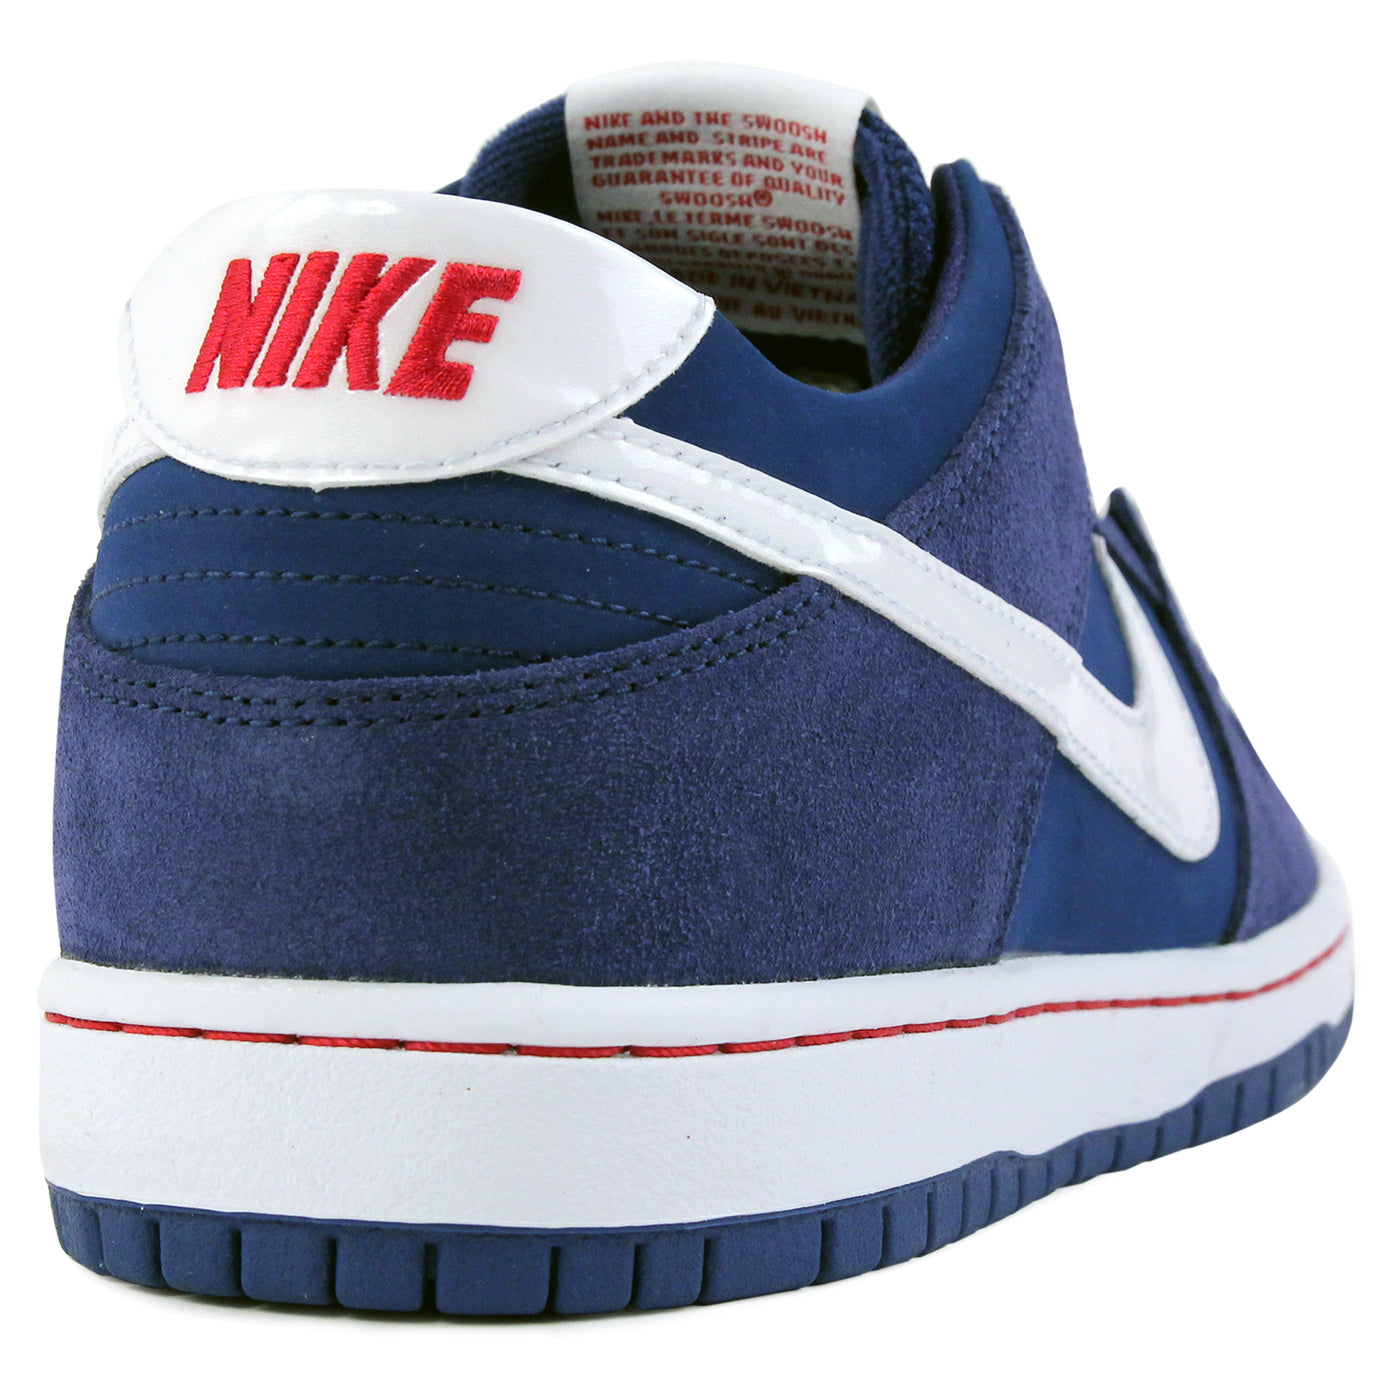 6b40ae32aea3 Nike SB Dunk Low Pro Ishod Wair Shoes - Deep Royal   White   Gym Red. Size  Charts